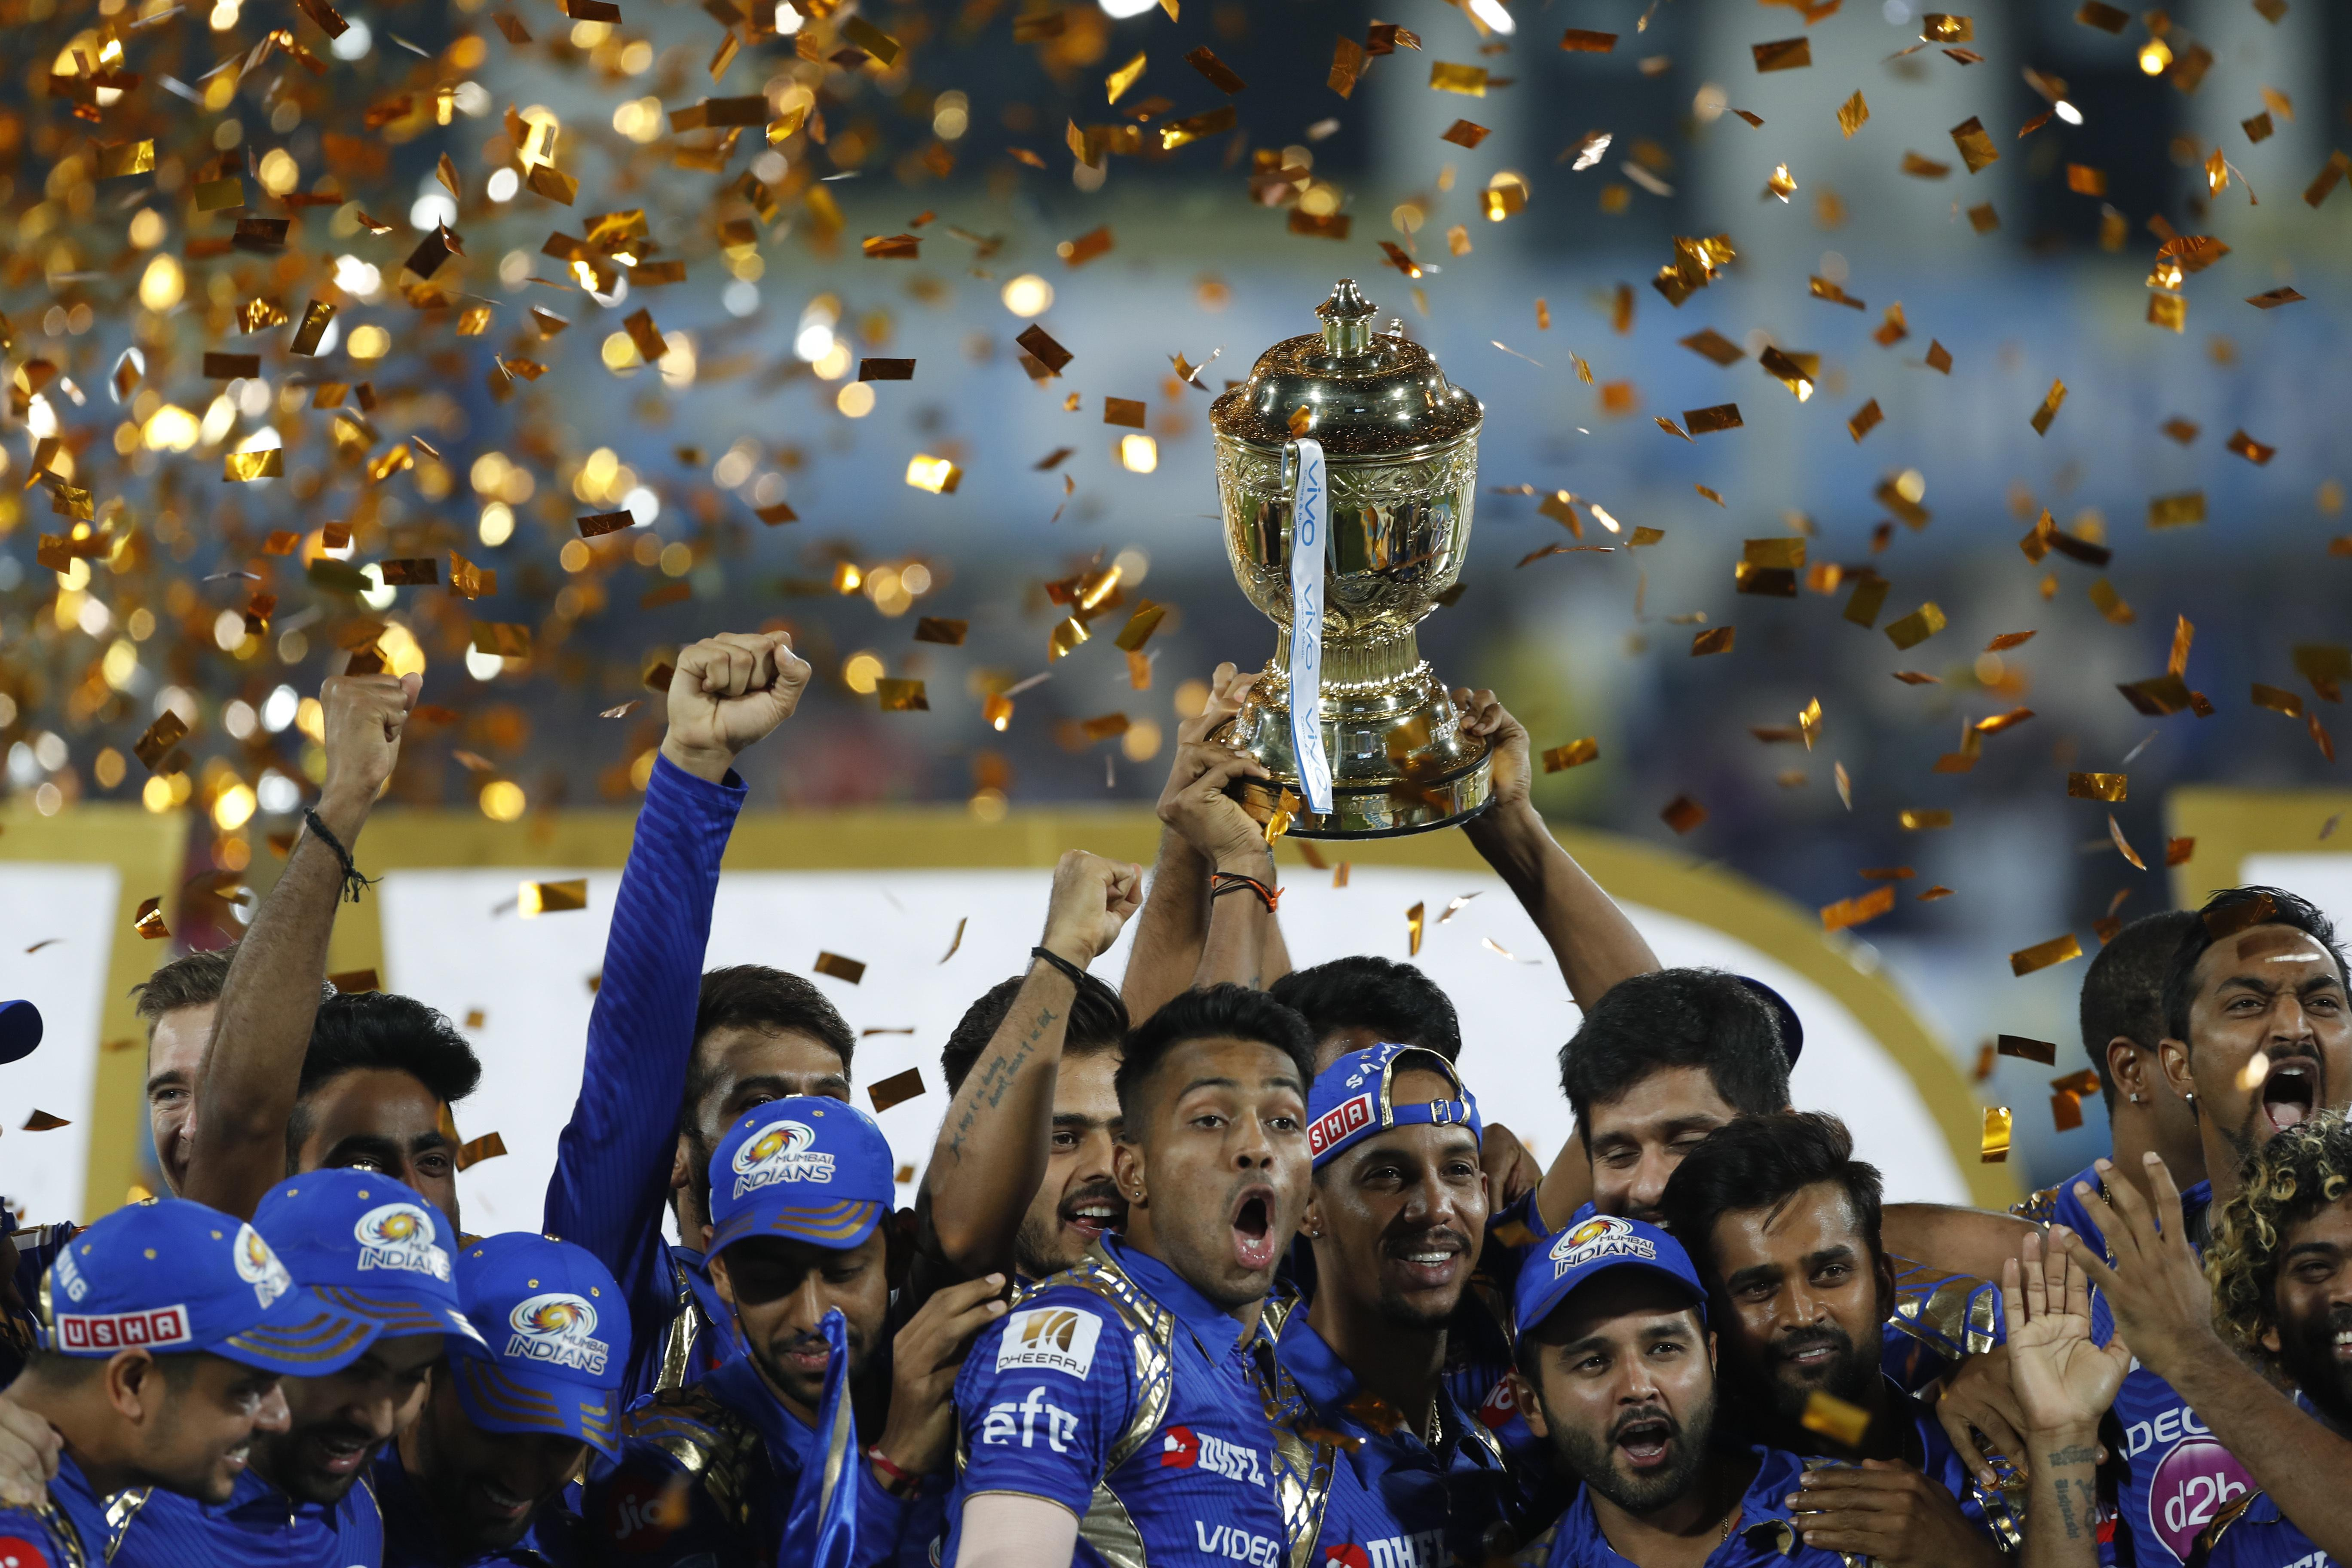 Mumbai Indians are looking to defend the IPL title they won last year